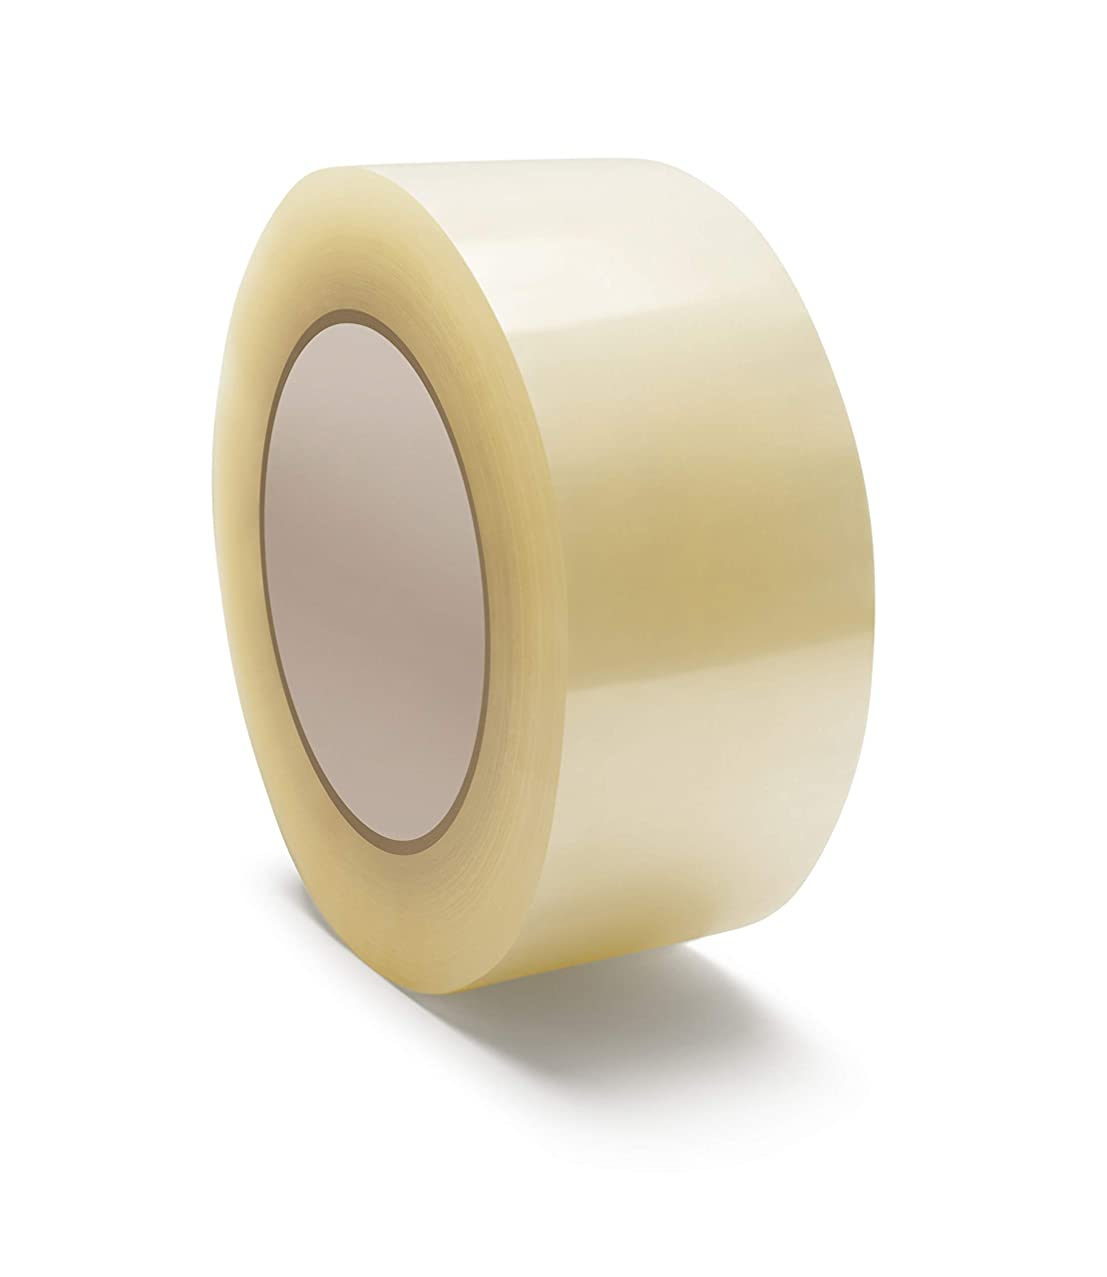 Clear Packing Tapes - 110 Yards Length per Roll (324 Rolls) - 2 Inch Wide Stronger & Thicker 2 Mil, Acrylic Adhesive Industrial Depot Tape for Moving Boxes